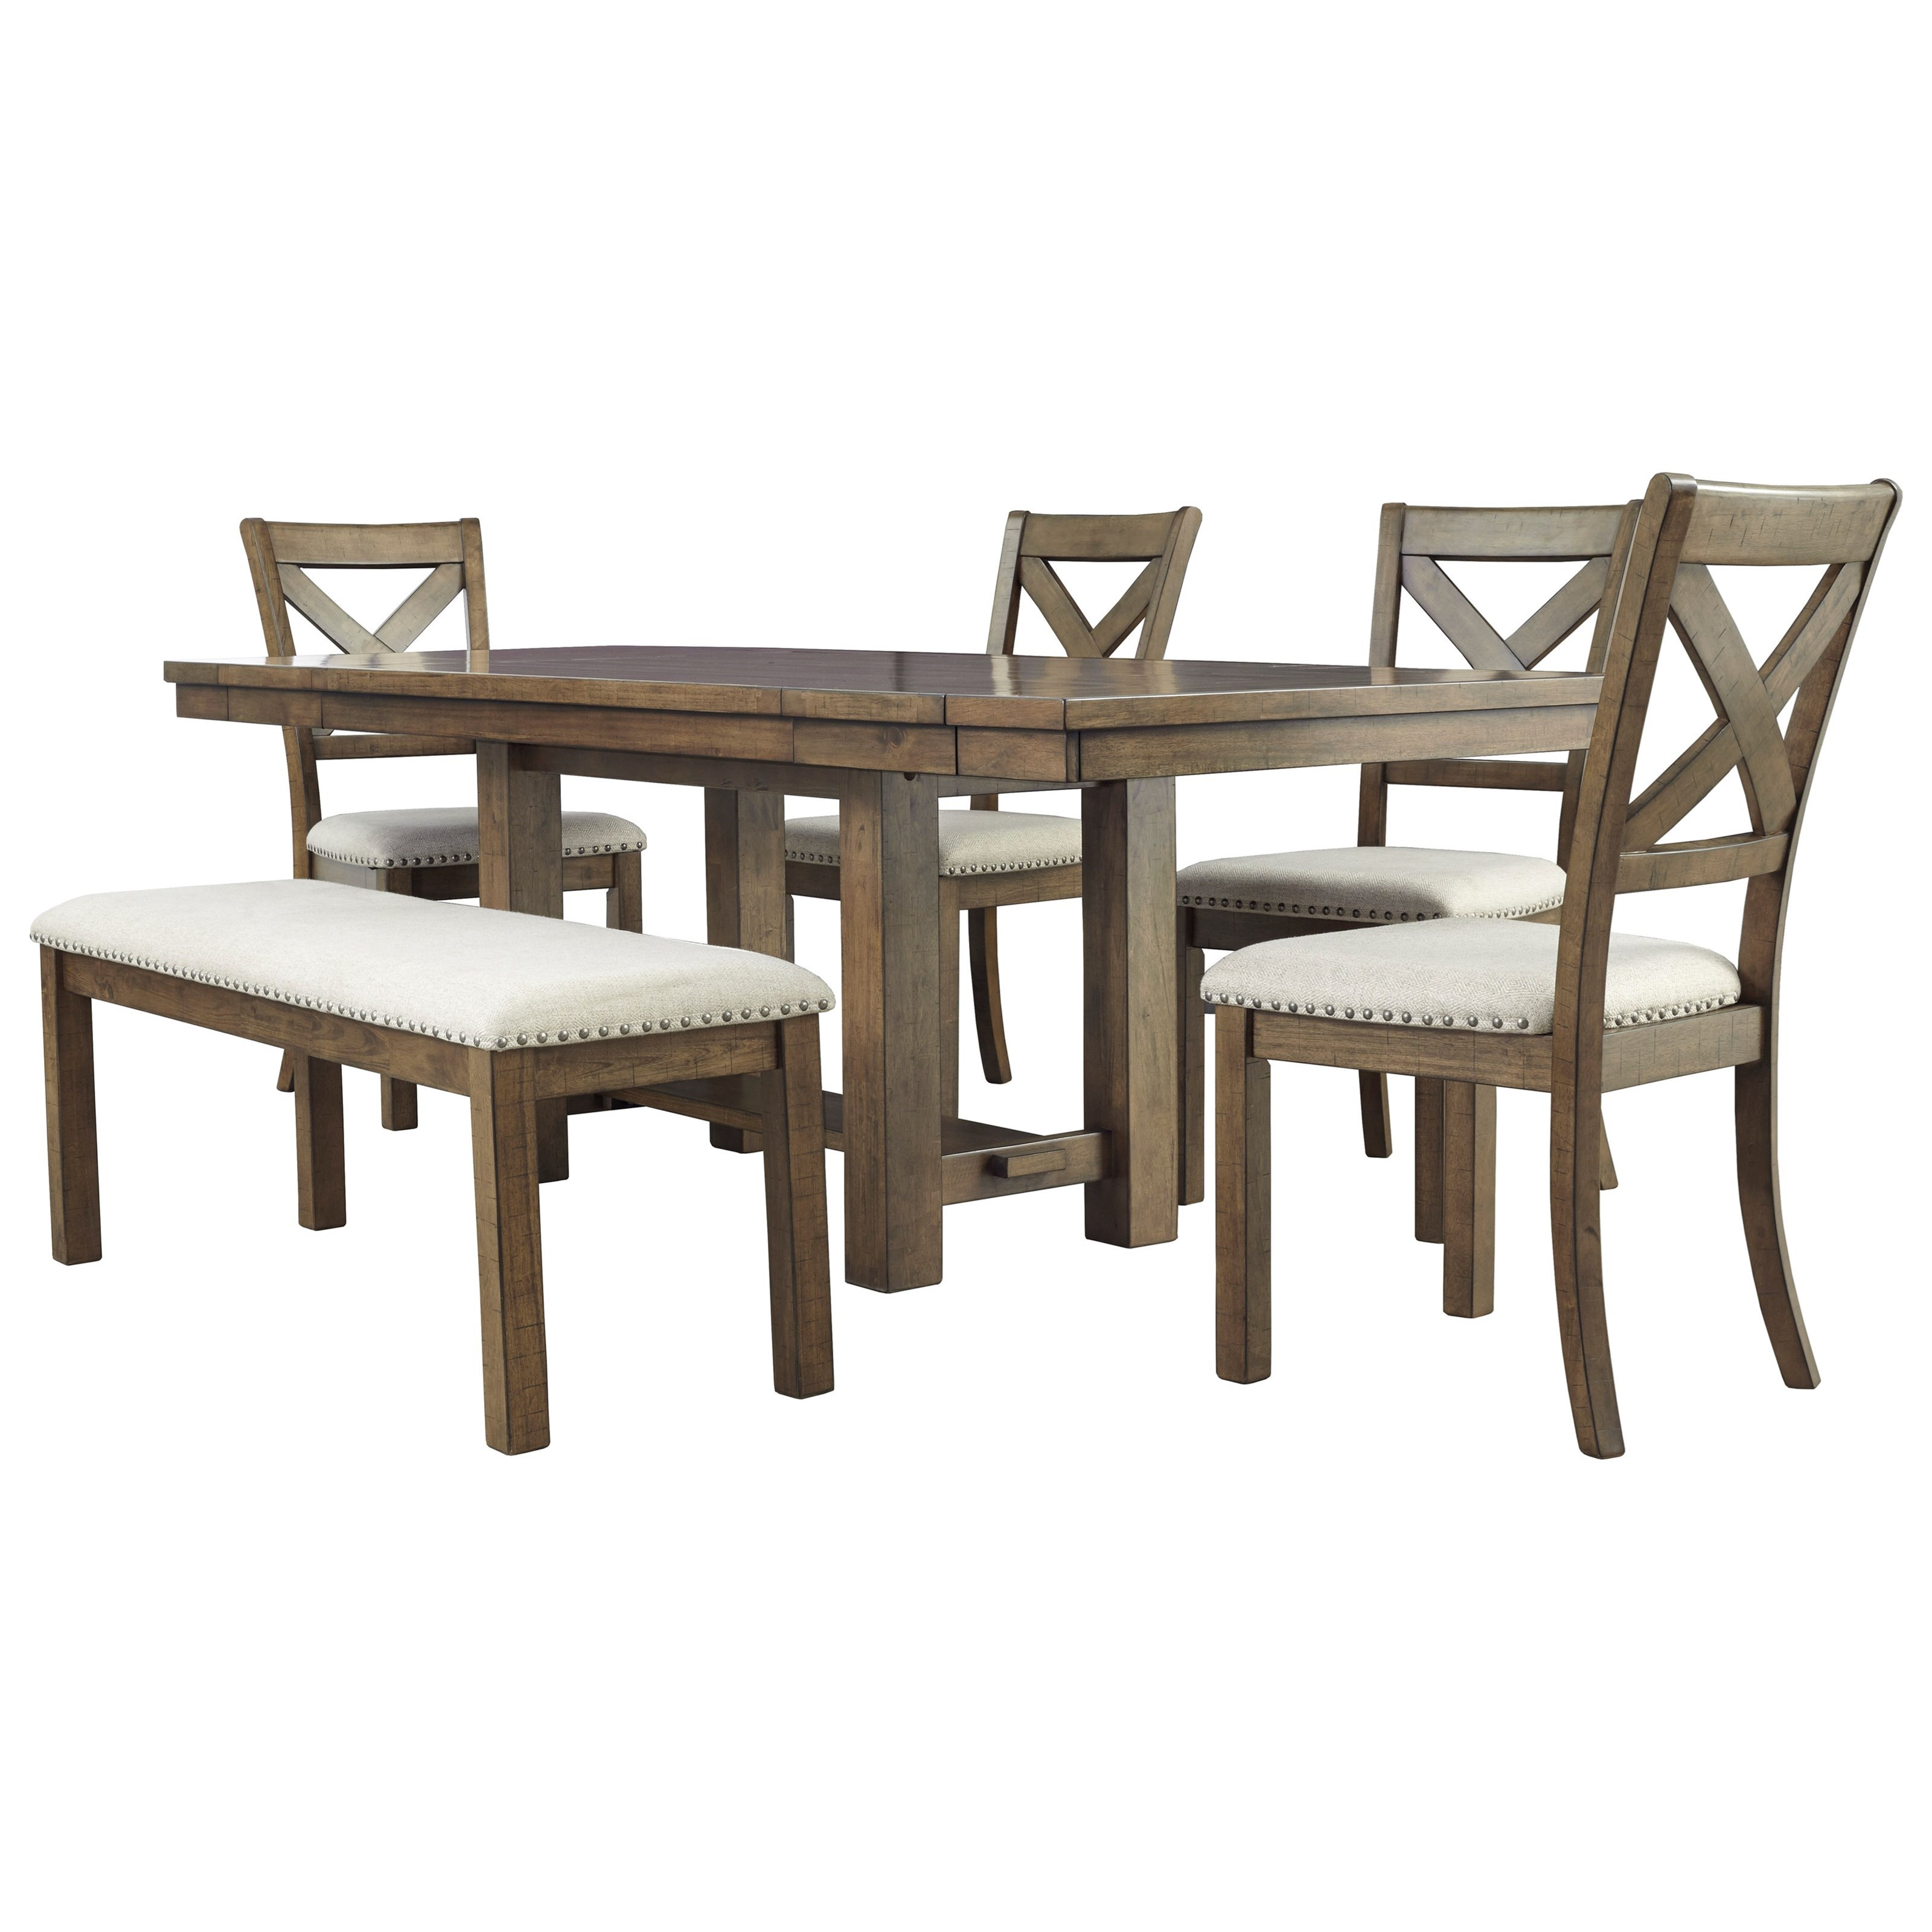 Moriville 6-Piece Table and Chair Set with Bench by Signature Design by Ashley at Beck's Furniture